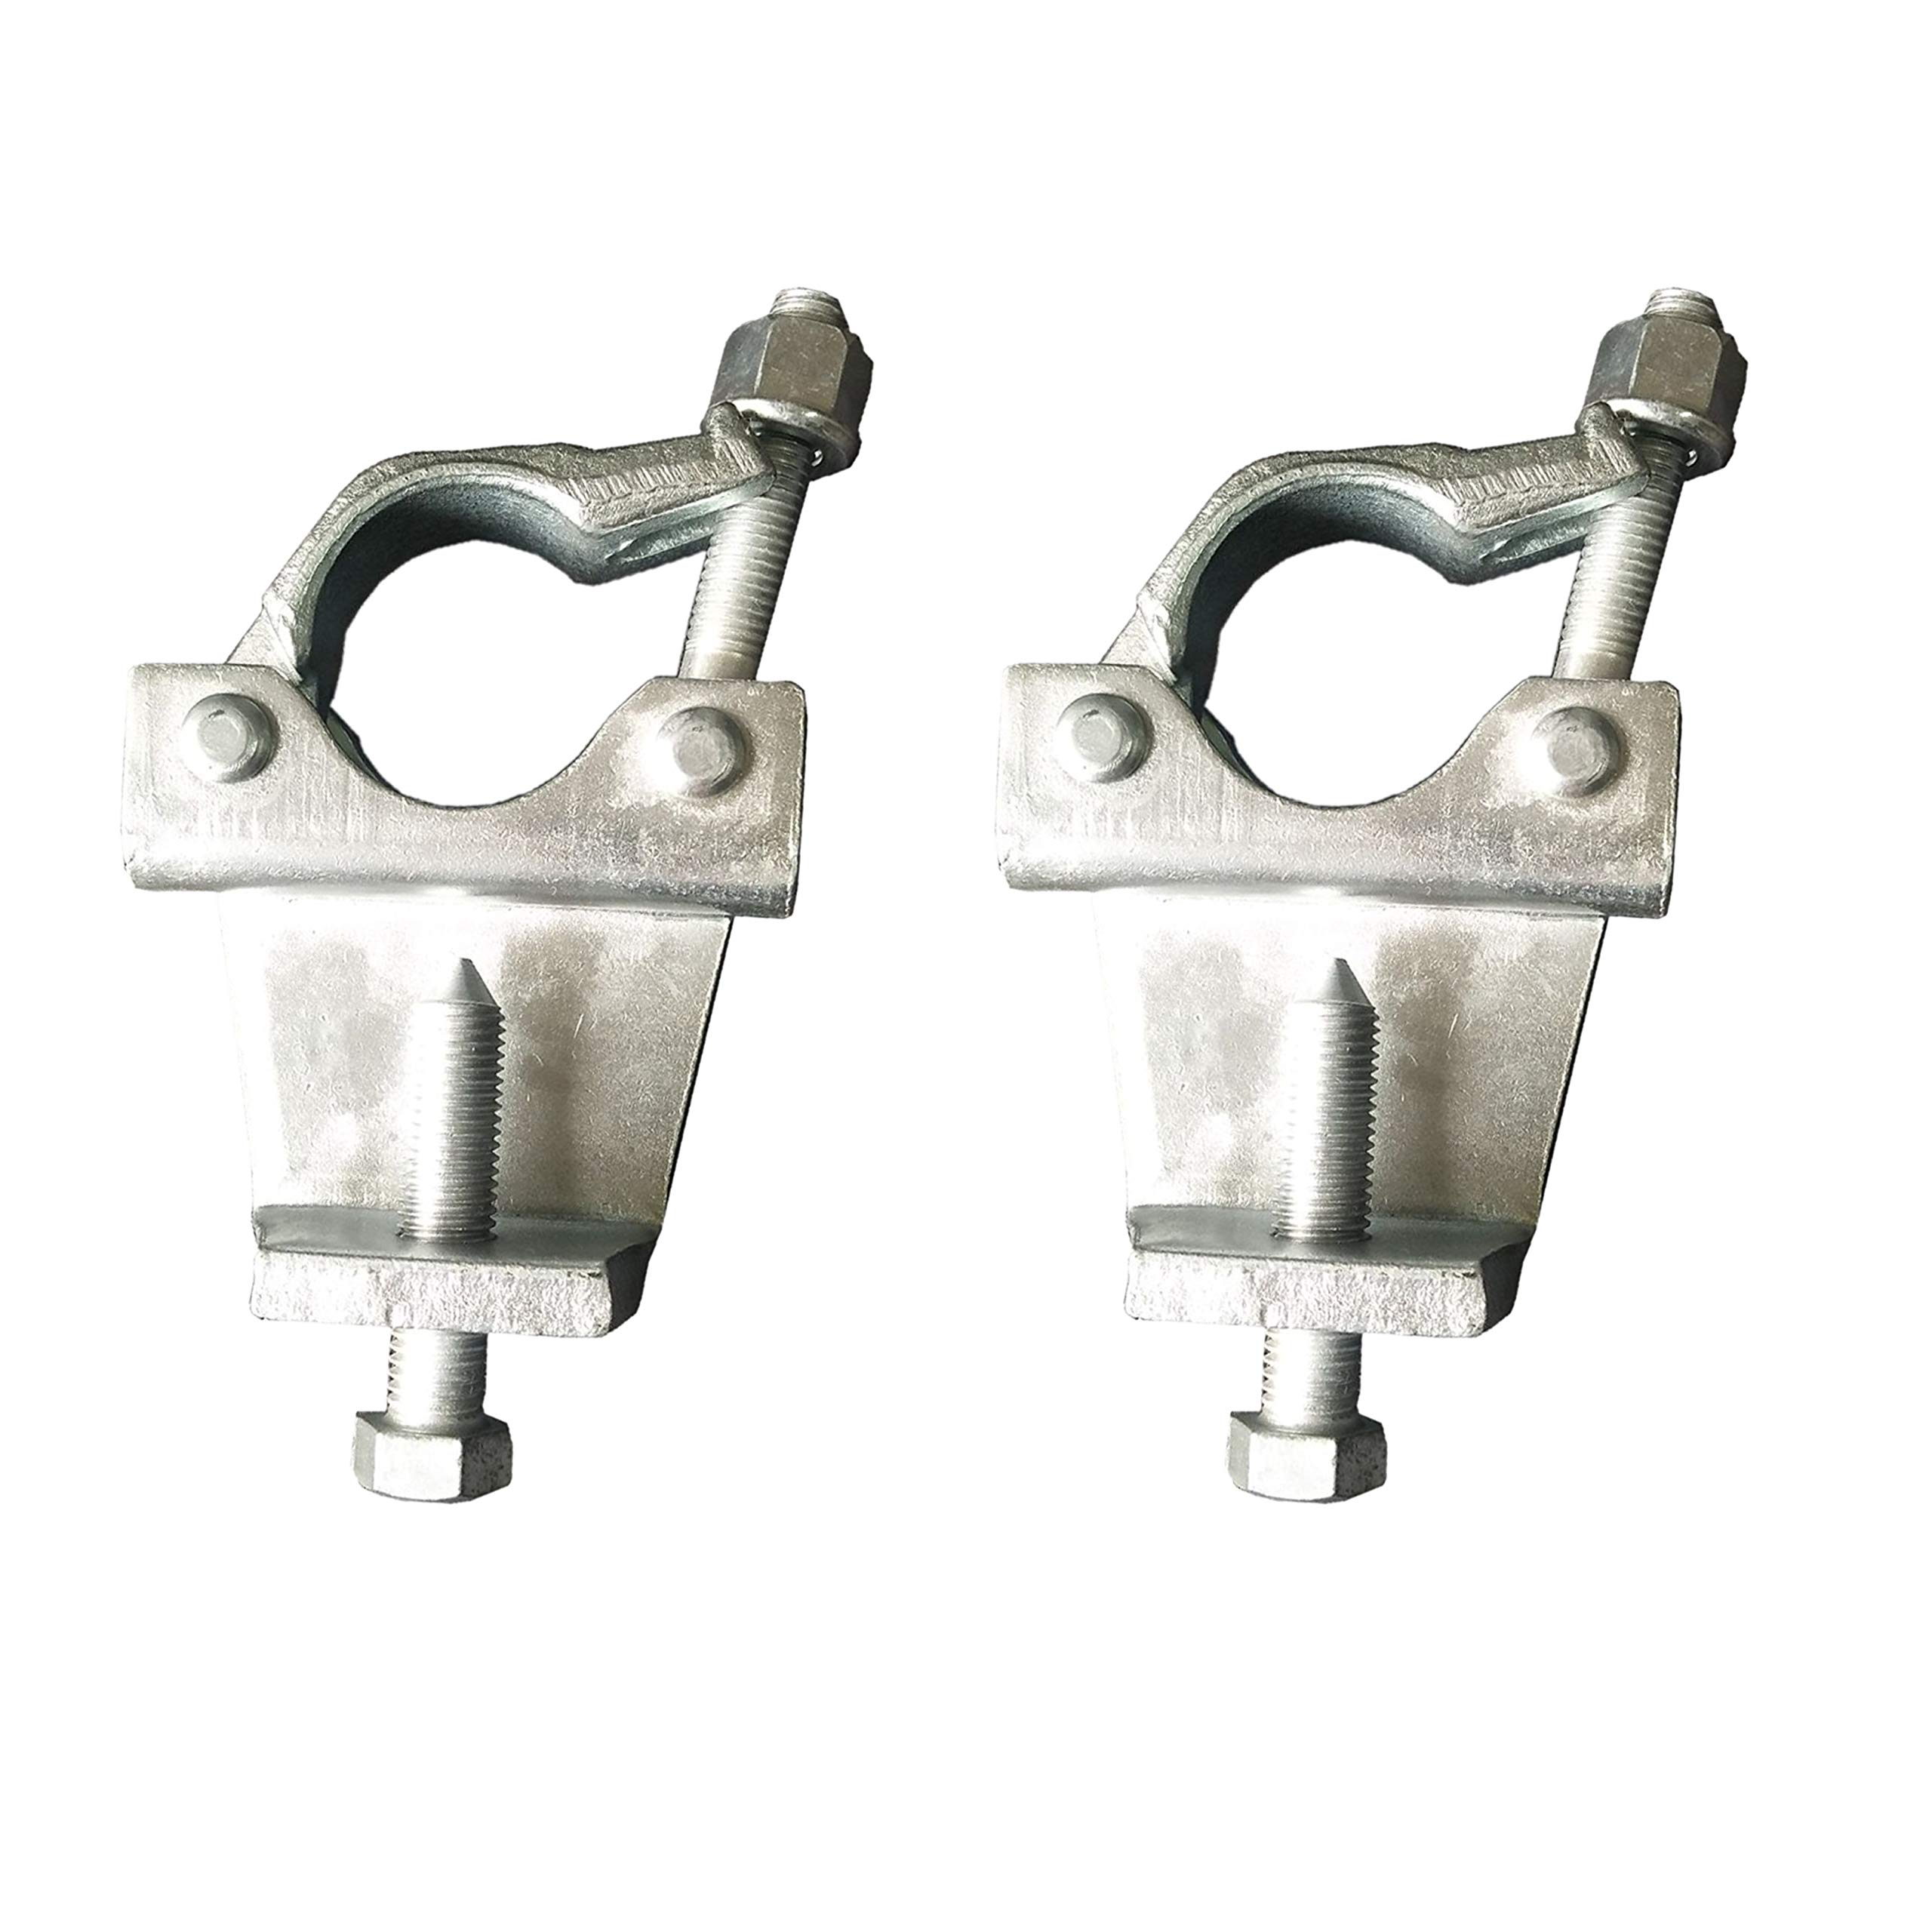 Scaffolding Beam Clamps 2 pcs Brand New Galvanized by eallc